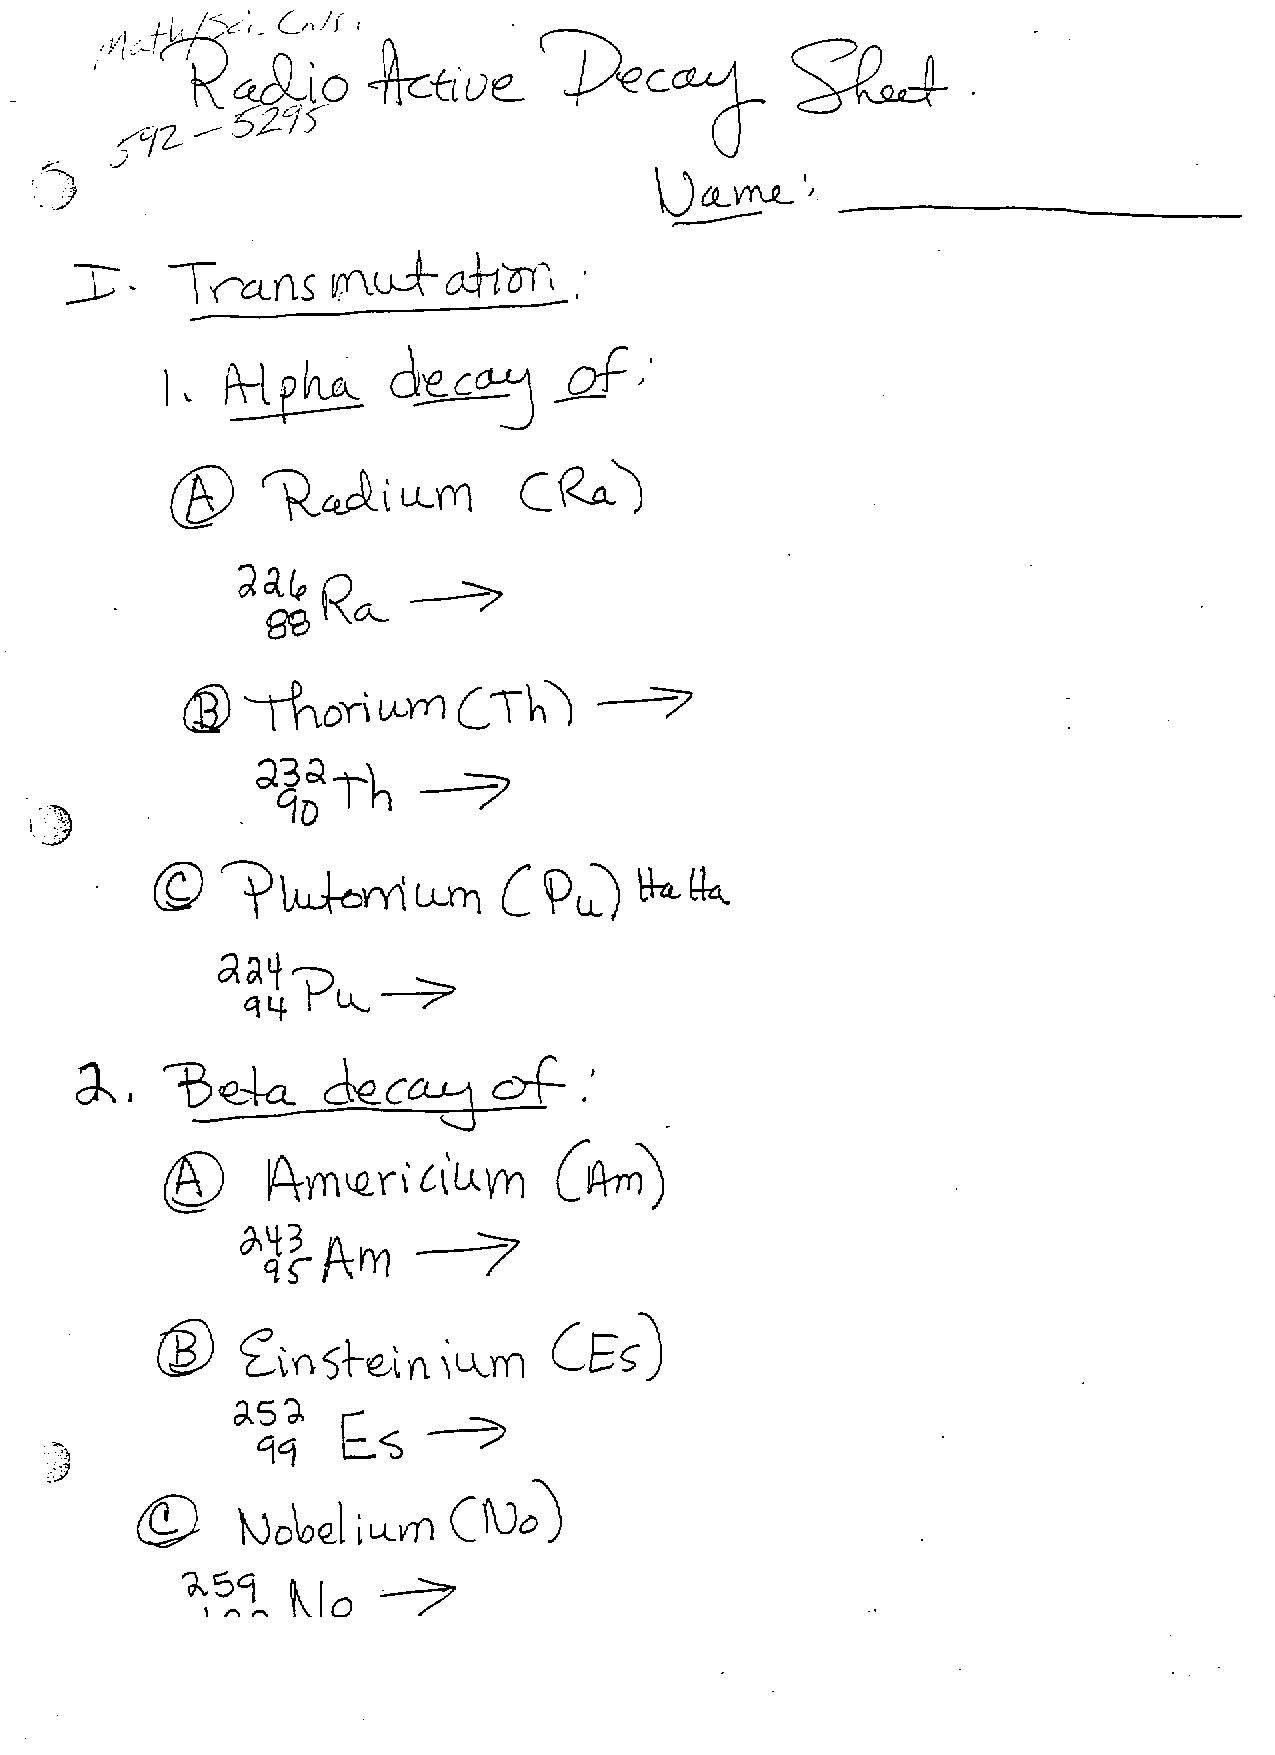 worksheet Nuclear Decay Worksheet With Answers nuclear decay worksheet answers free worksheets library download answers